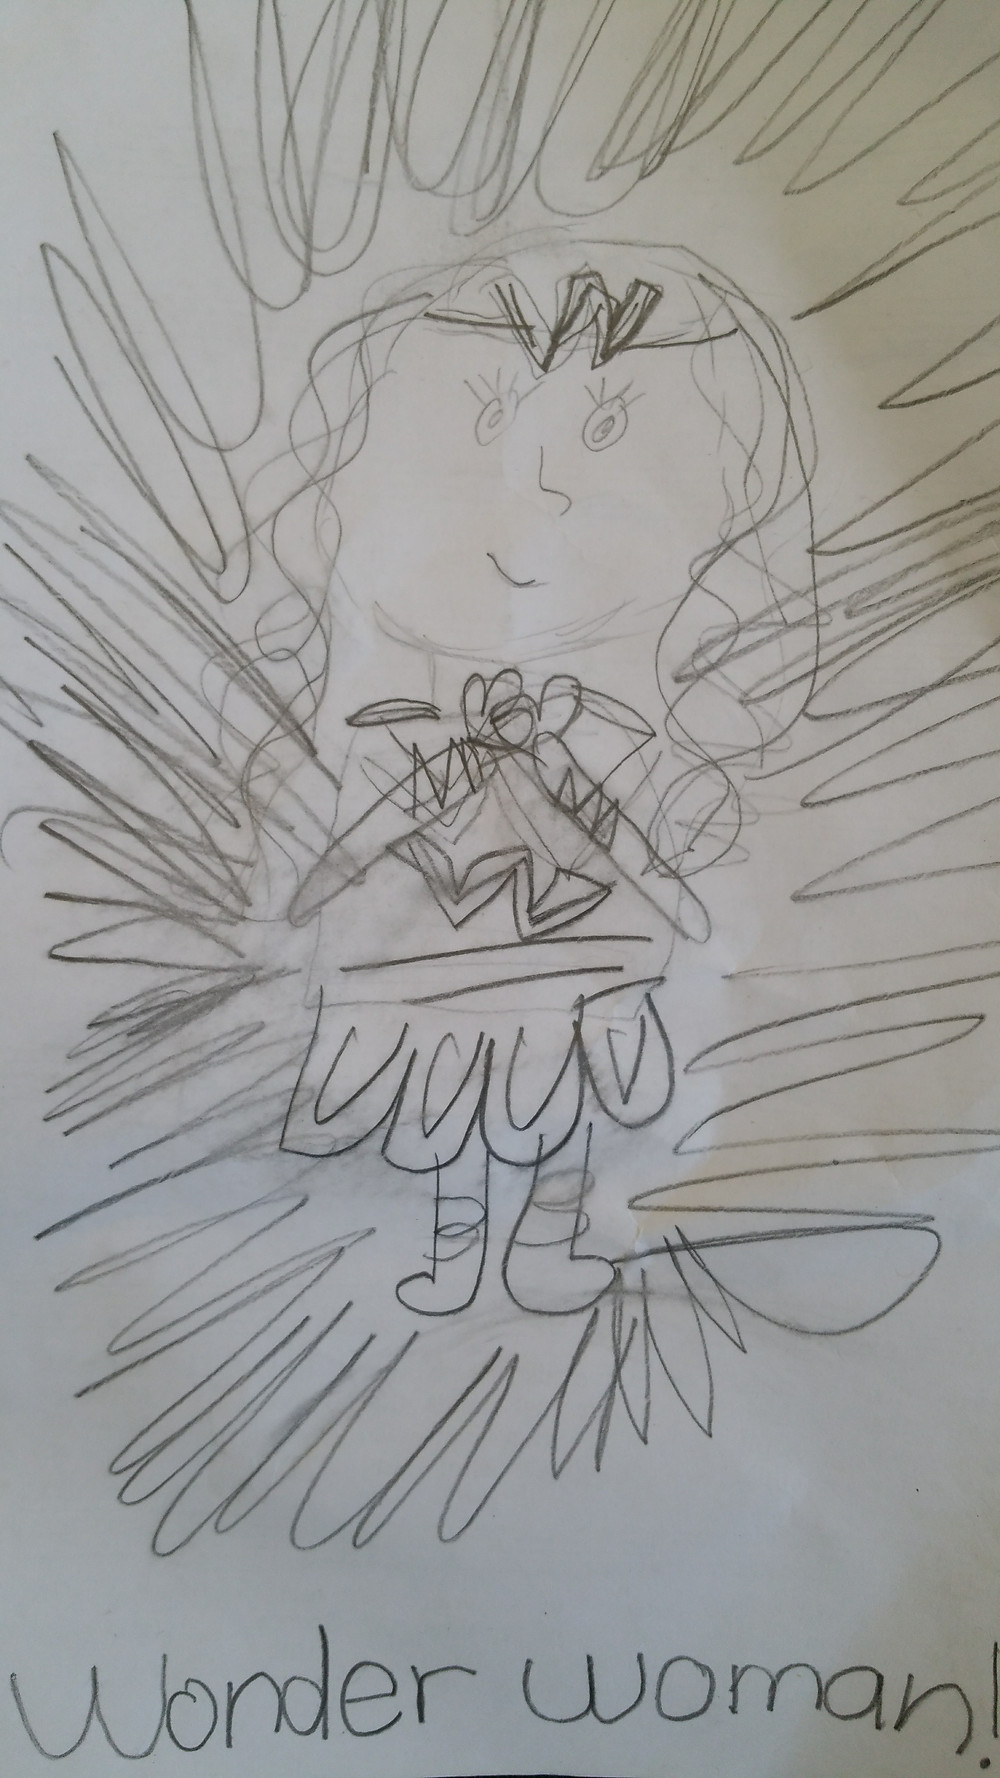 child's pencil drawing of Wonder Woman